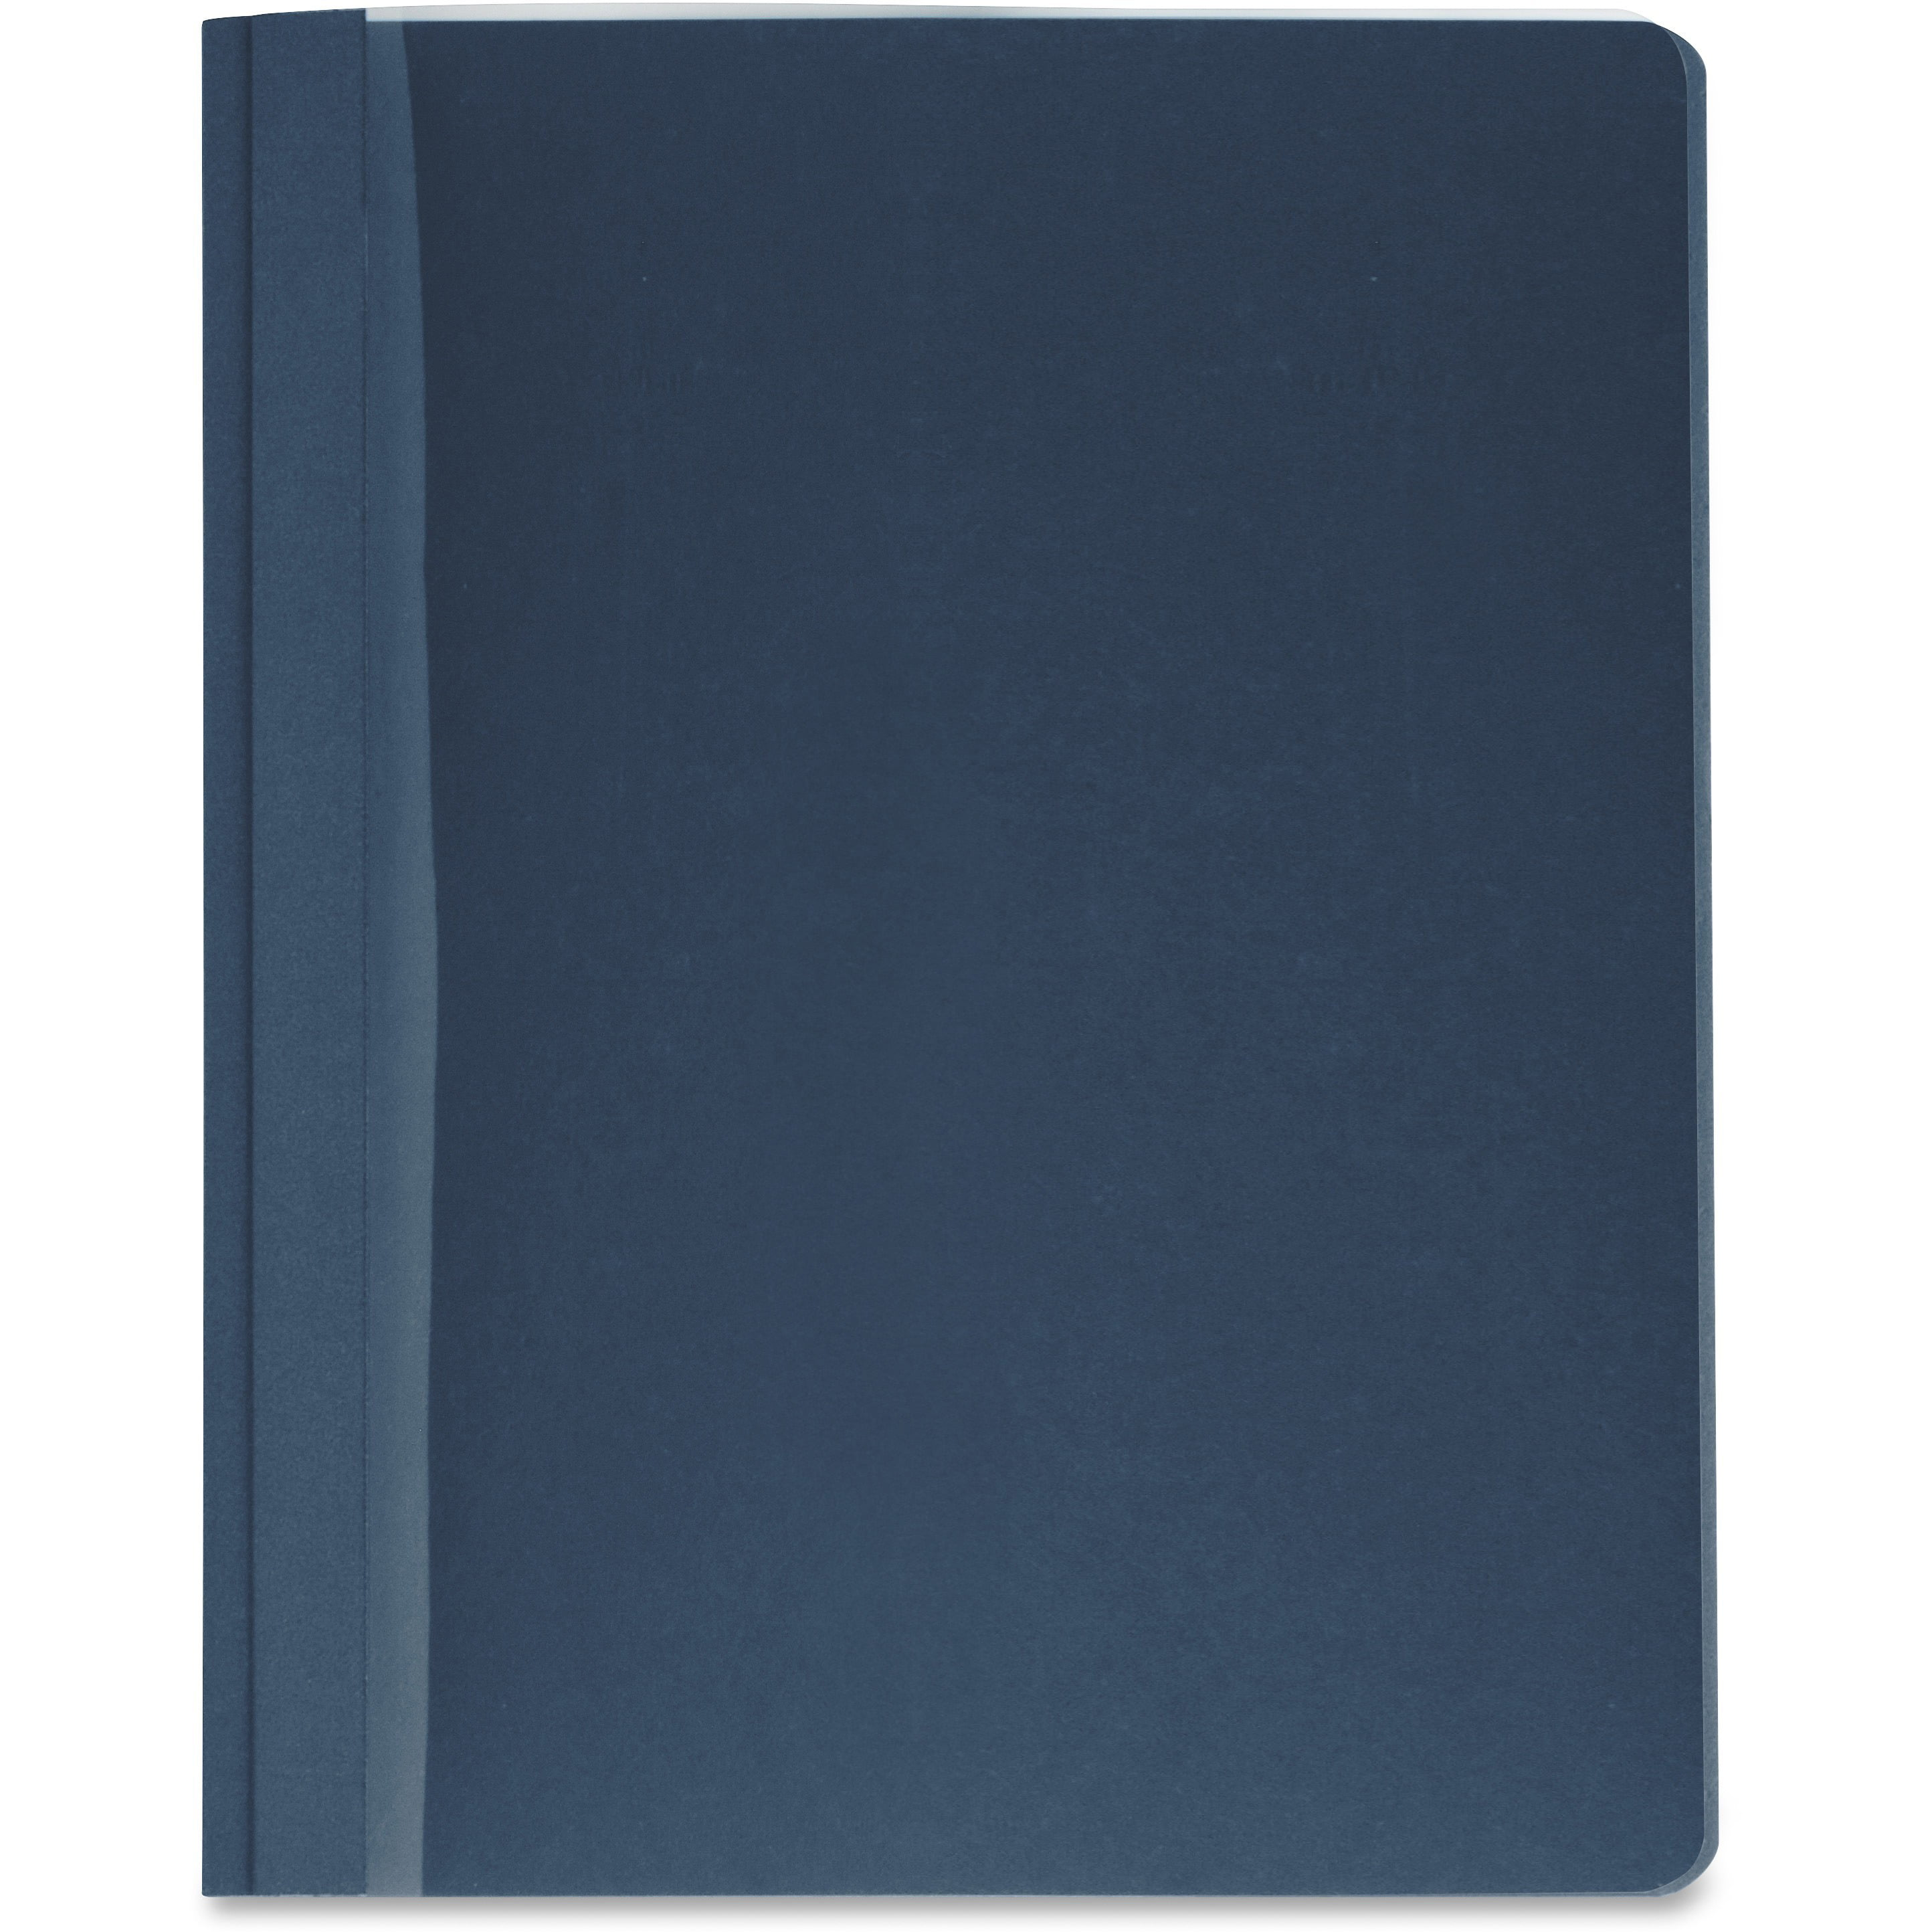 Business Source, BSN78522, Clear Front Report Covers, 25   Box, Clear,Dark Blue by Business Source